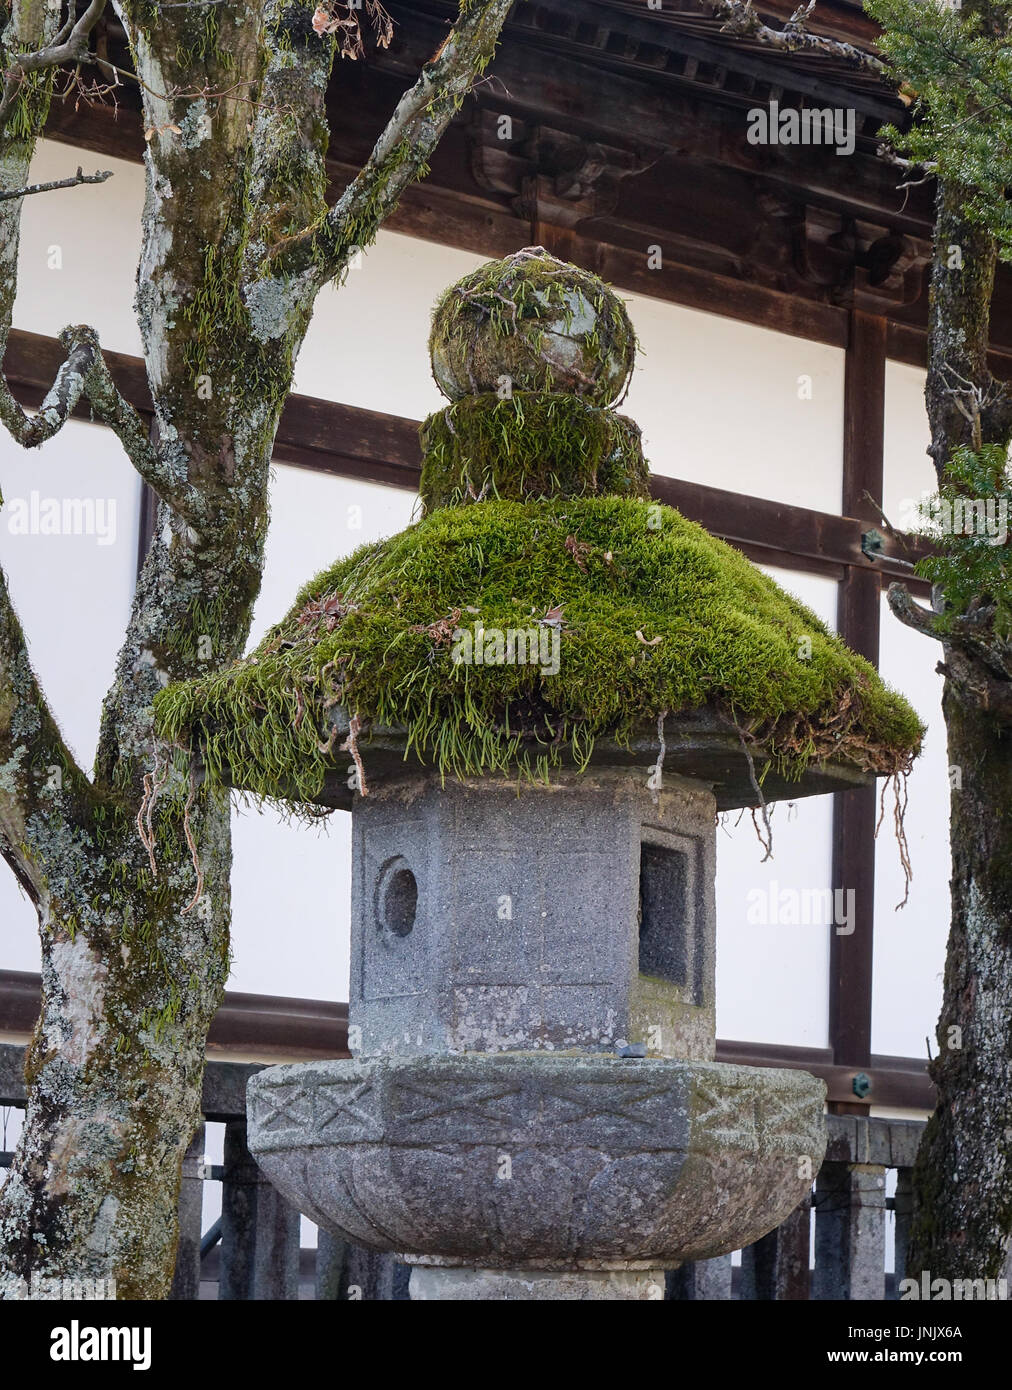 Ancient stone and wooden lanterns covered in moss in Nara, Japan. - Stock Image